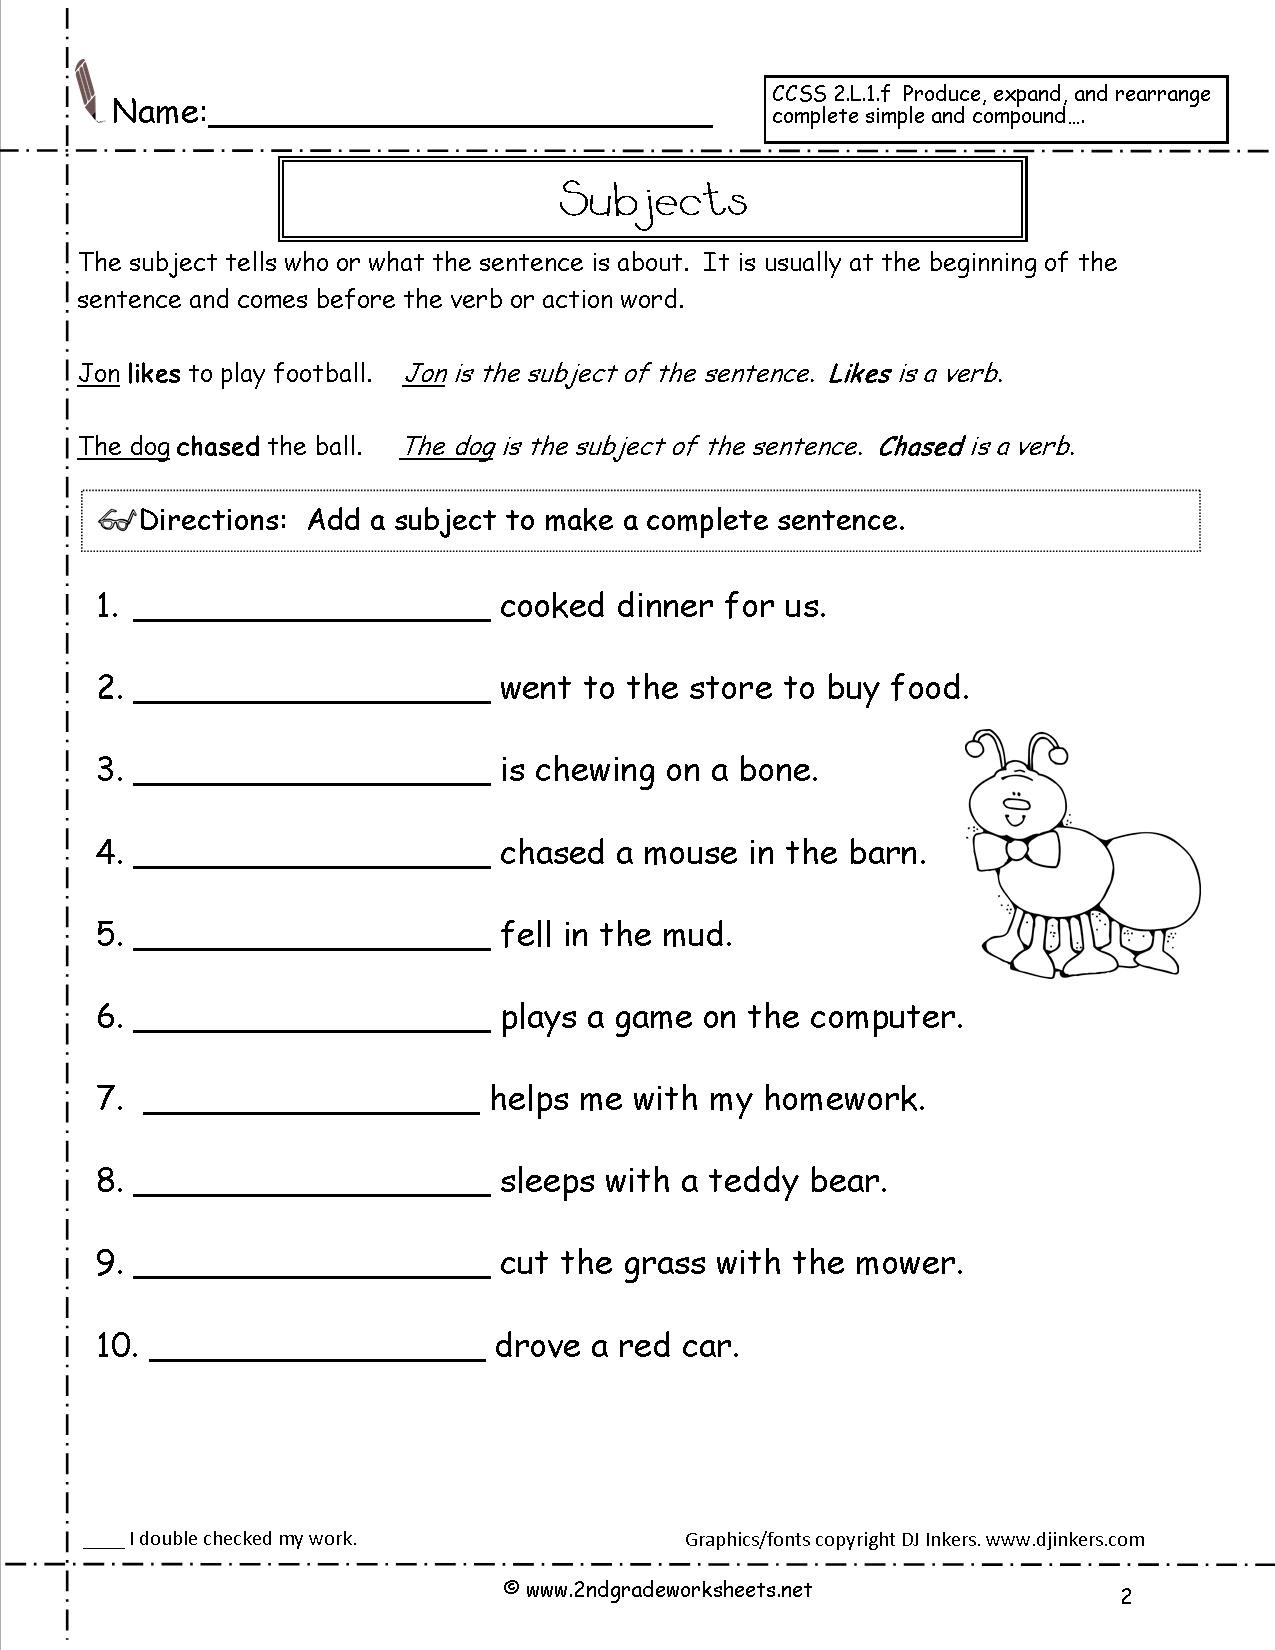 Grid Map Worksheets Grade 2 Basic Math Words Printable Cursive Worksheets 3rd Grade